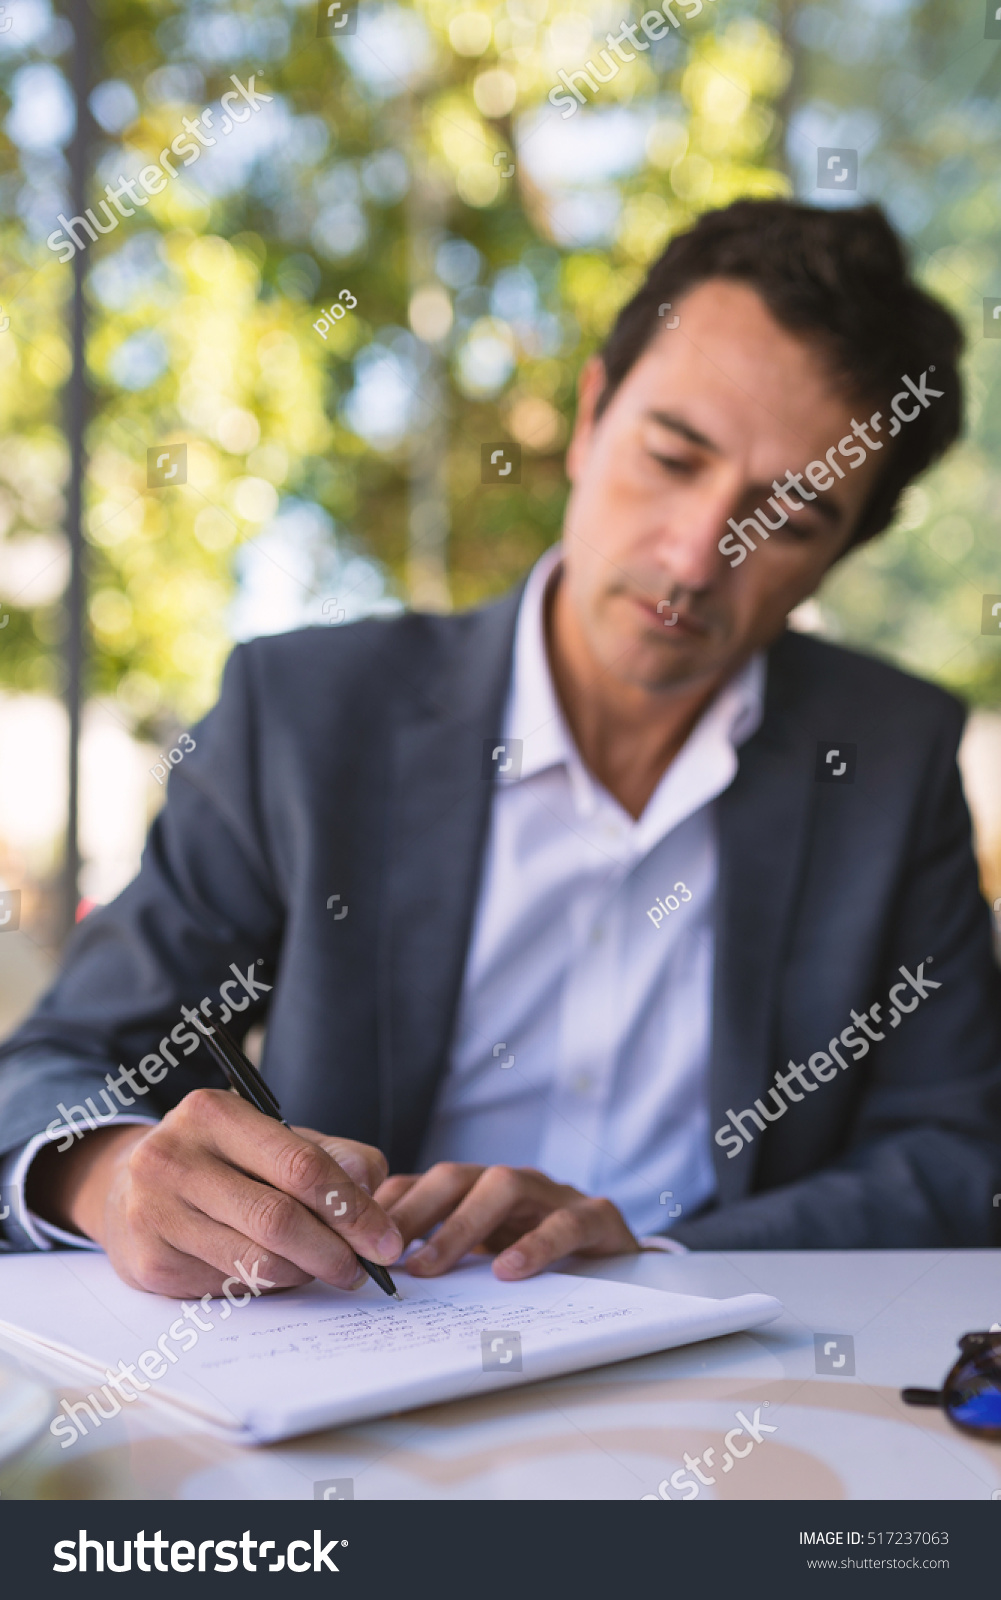 concentrate middle age businessman portrait writing stock photo  concentrate middle age businessman portrait writing stock photo 517237063 shutterstock